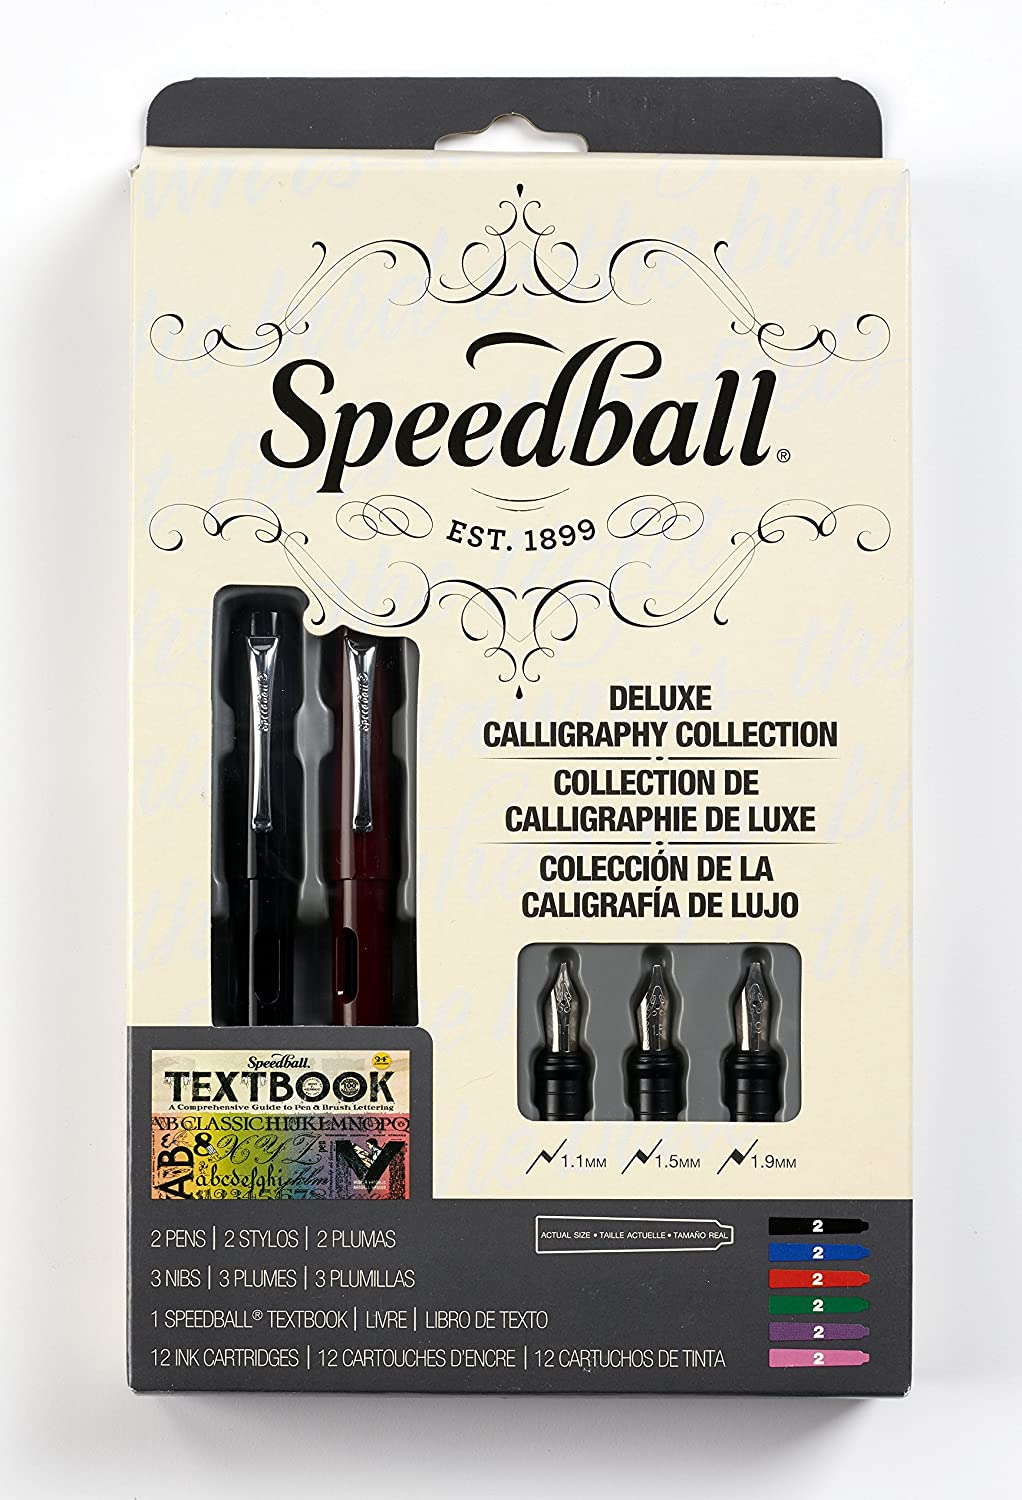 With 2 Pens Speedball 002904 Calligraphy Deluxe Fountain Pen Set Pen Set 3 Nibs and 12 Assorted Ink Cartridges